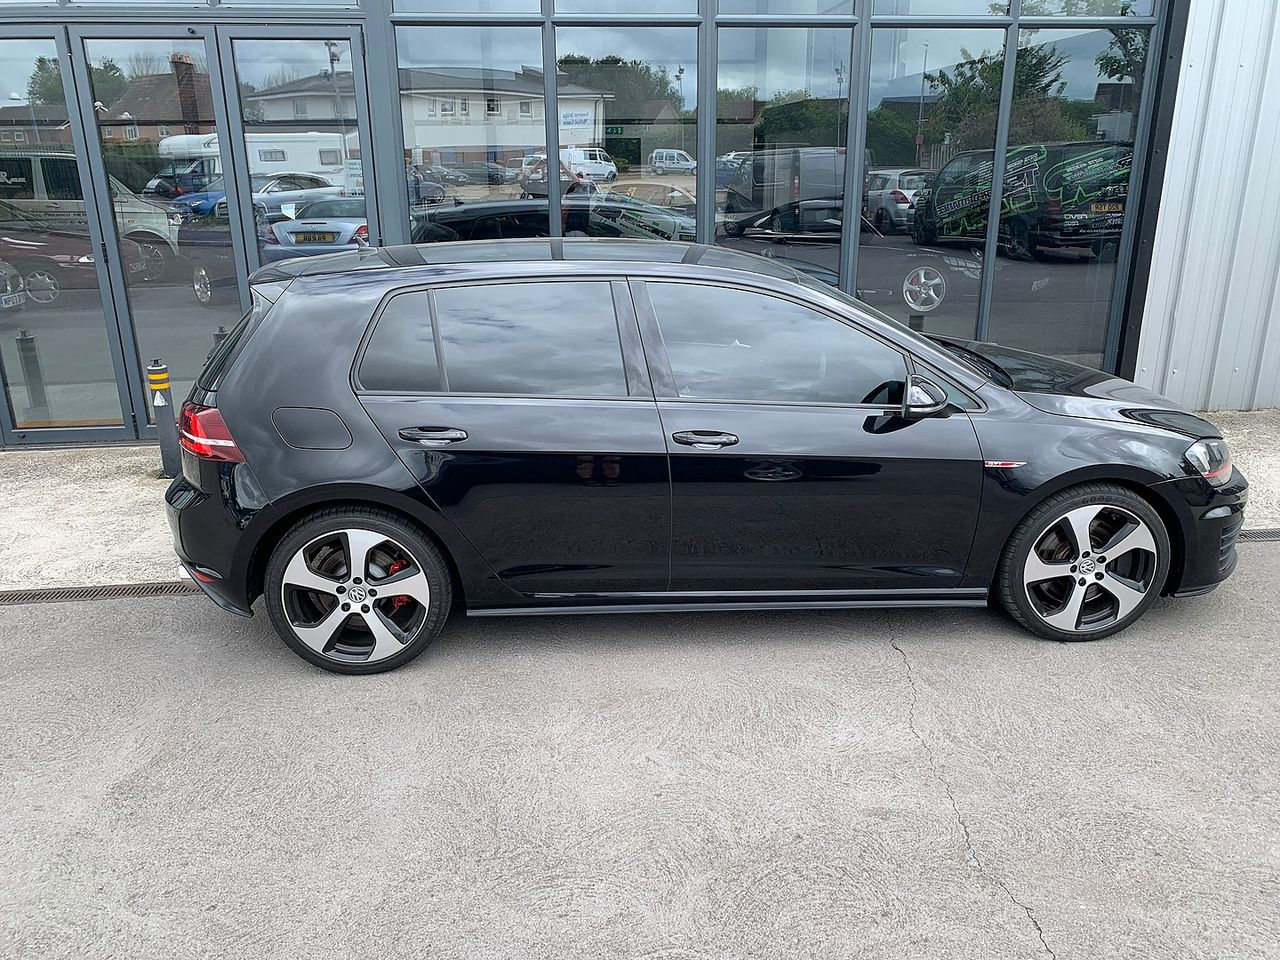 2015 VOLKSWAGEN Golf GTI 2.0 220PS TSI - Picture 3 of 10